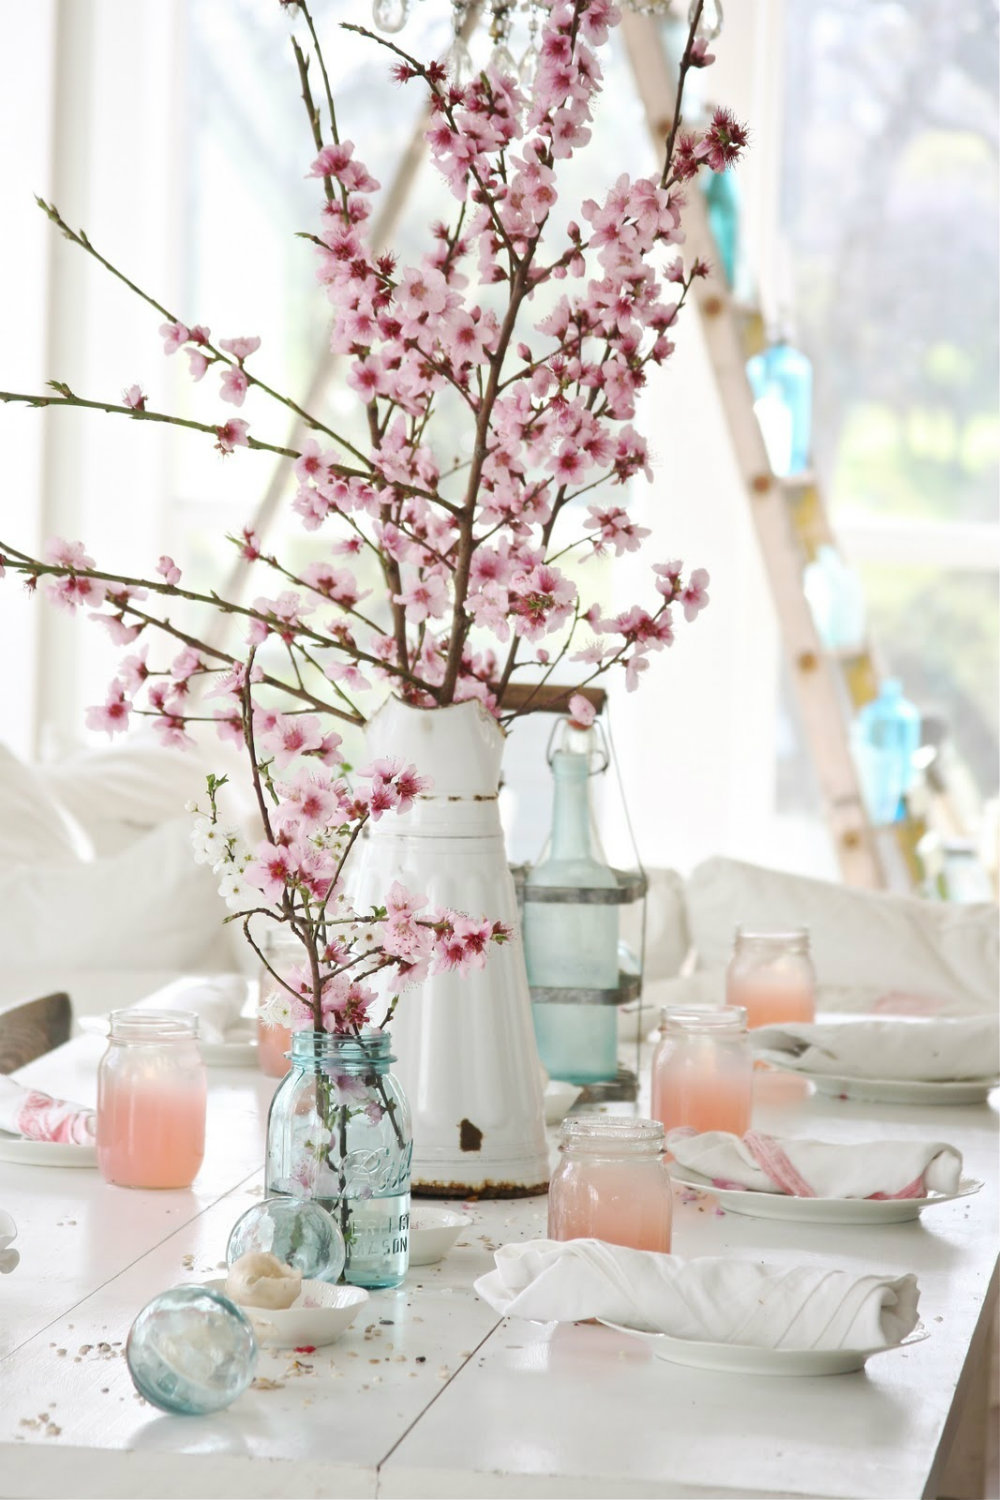 Stunning Easter Table Setting Ideas You Will Love 03 easter table setting ideas Stunning Easter Table  sc 1 st  Luxxu & Stunning Easter Table Setting Ideas You Will Love